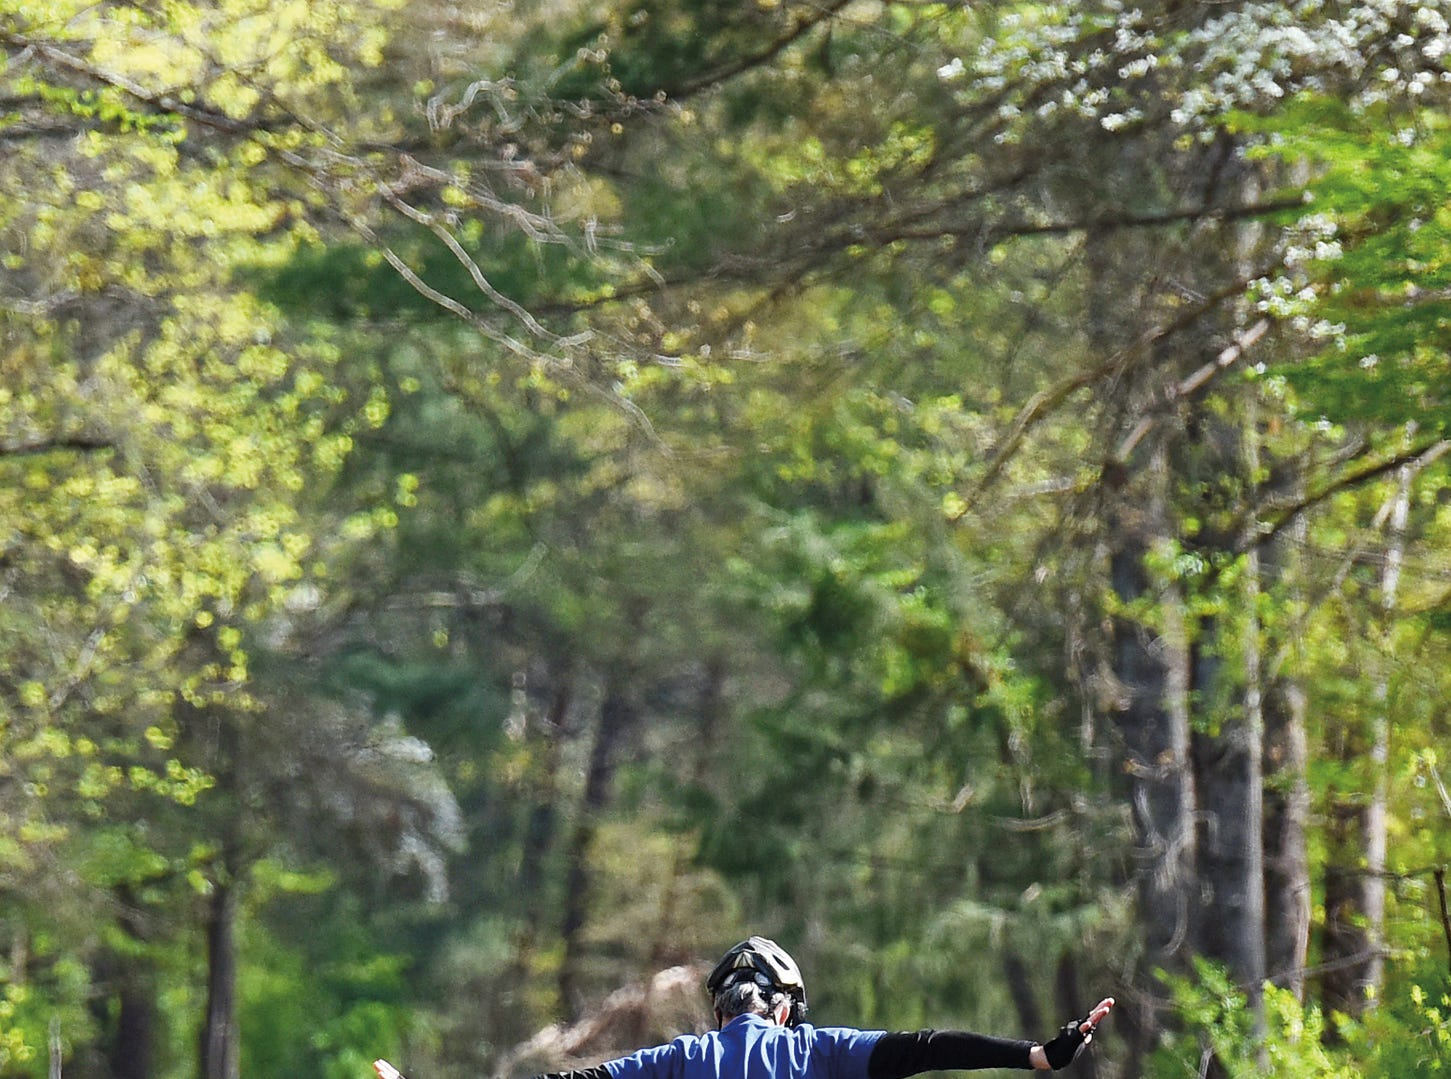 A cyclist stretches his arms out while riding down the Swamp Rabbit Trail near Furman University.